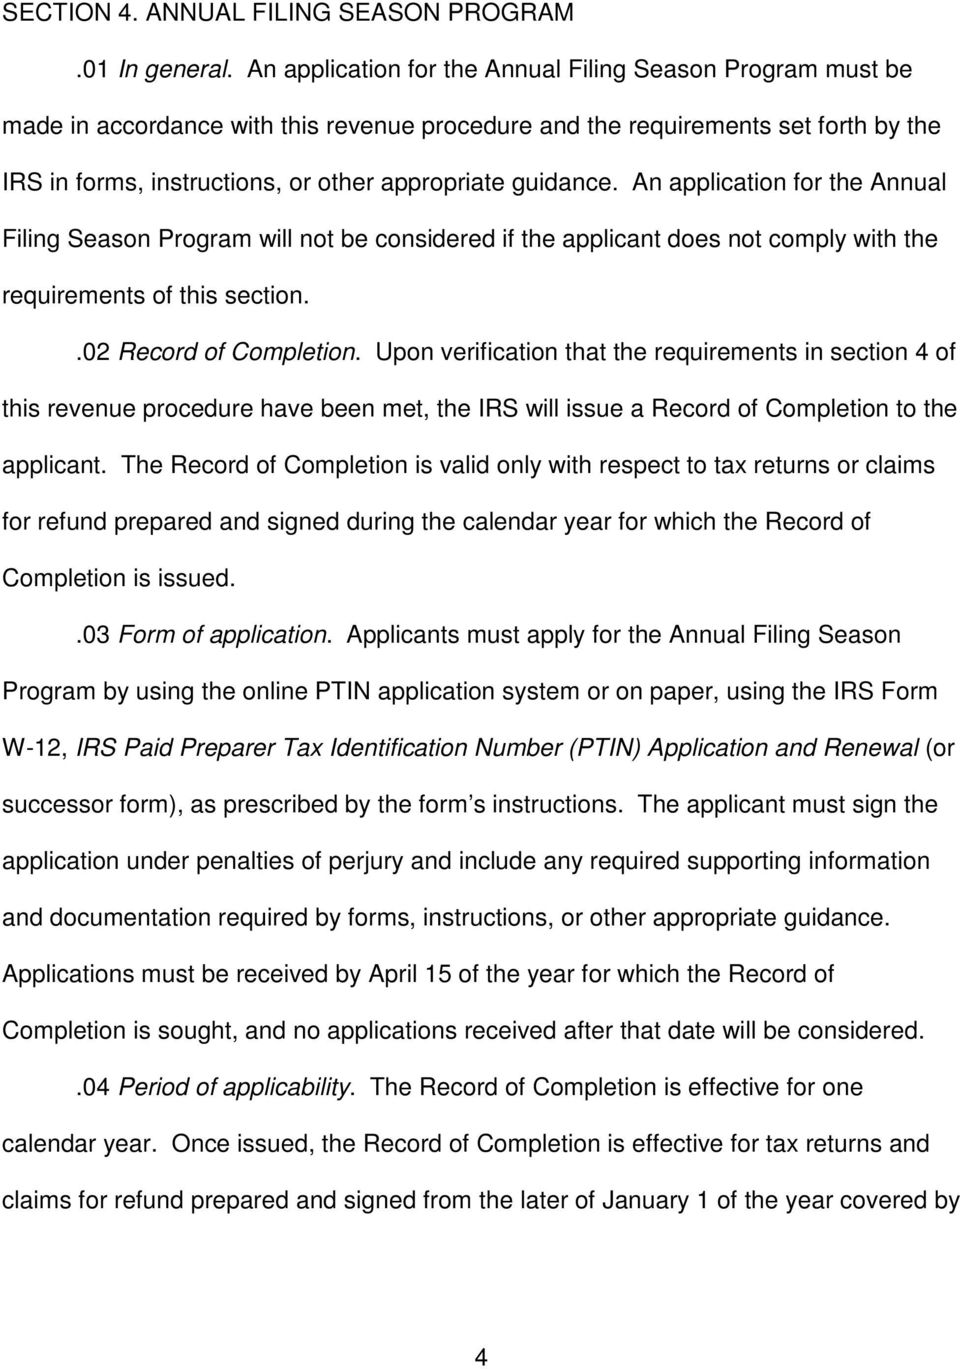 guidance. An application for the Annual Filing Season Program will not be considered if the applicant does not comply with the requirements of this section..02 Record of Completion.